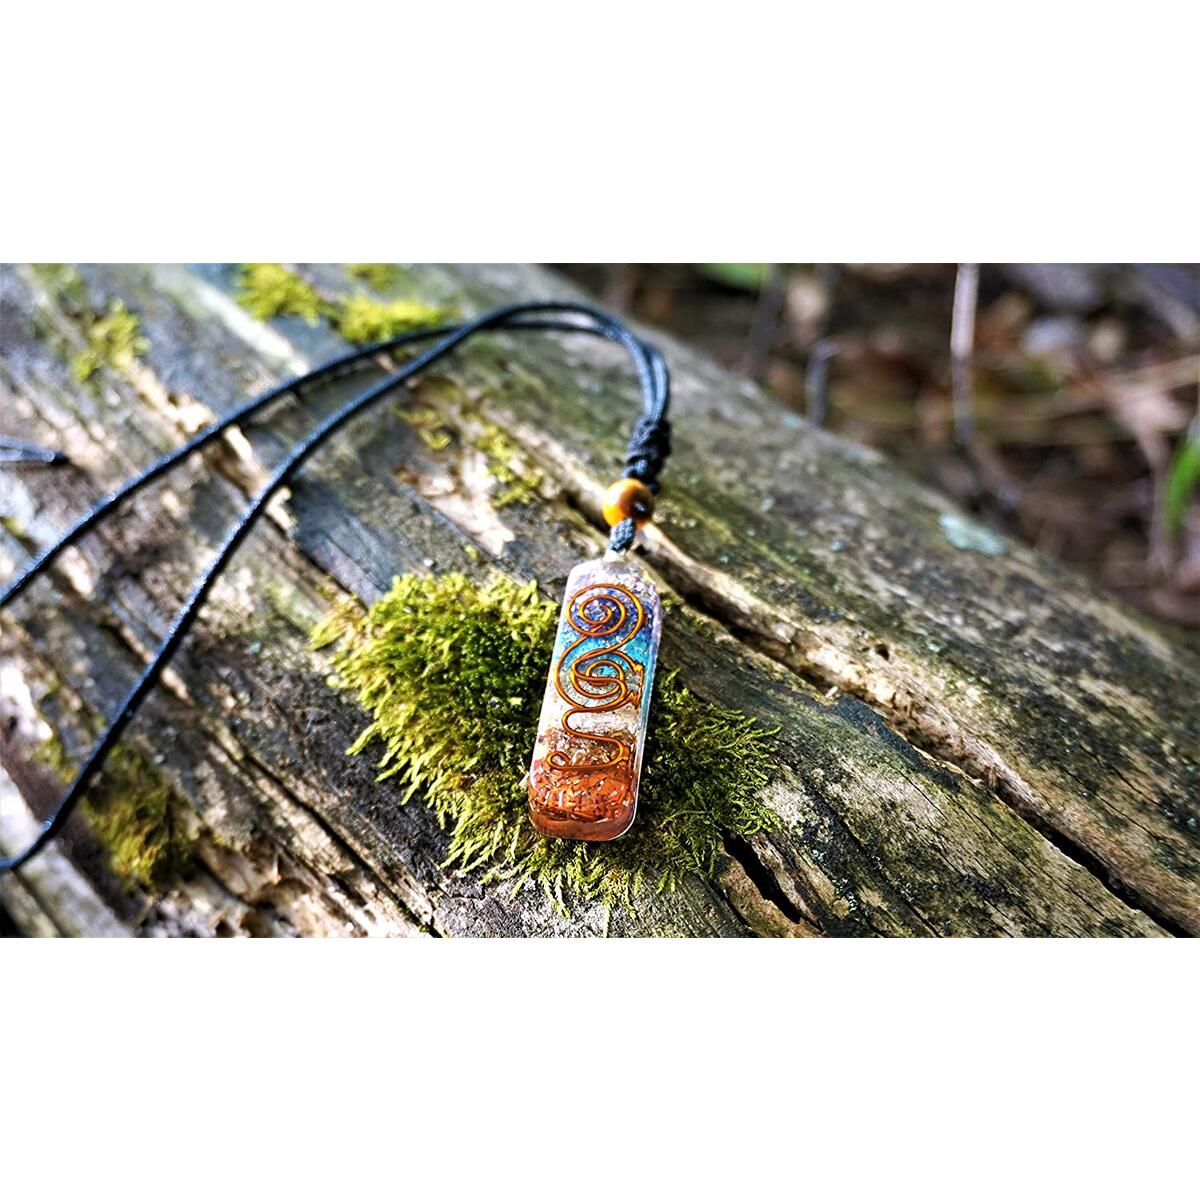 Healing Crystals Necklace with Adjustable Chord - 7 Healing Energy Chakra Crystals with EMF Protection